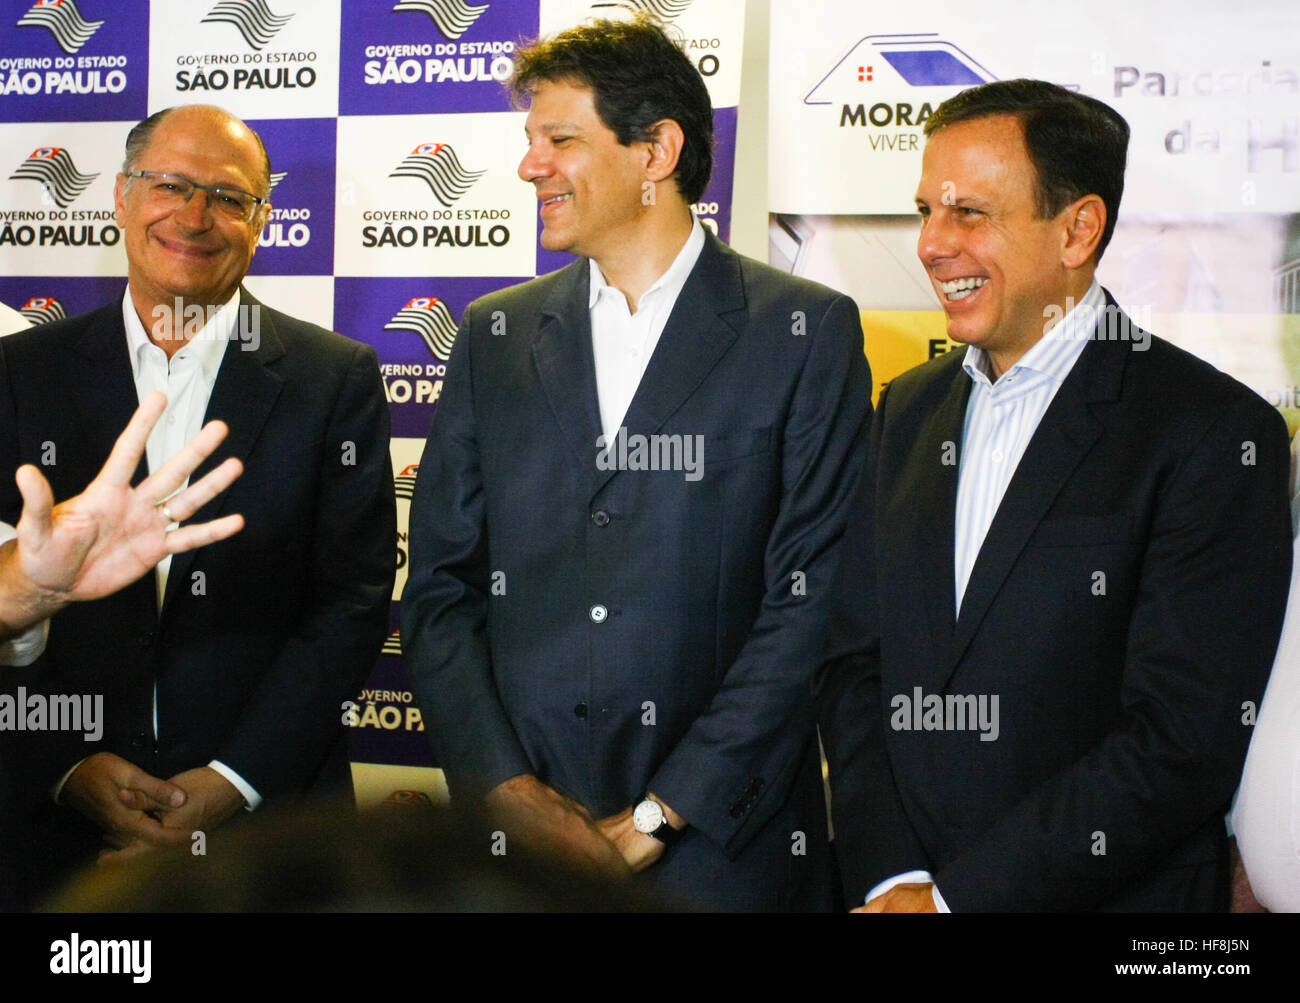 SÃO PAULO, SP - 29.12.2016: ENTREGA DE APARTAMENTOS DA PRIMEIRA PPP - Pictured from right. p/esq. Governor Geraldo Alckmin, Mayor Fernando Haddad and the mayor elected John Doria. Governor Geraldo Alckmin delivered on the morning of Thursday (29), at Rua São Caetano in downtown São Paulo, 126 apartments of the first Public-Private Partnership (PPP) in the country housing for low-income families. They attended the event Mayor Fernando Haddad and the mayor elected John Doria. (Photo: Aloisio Mauricio/Fotoarena) Stock Photo